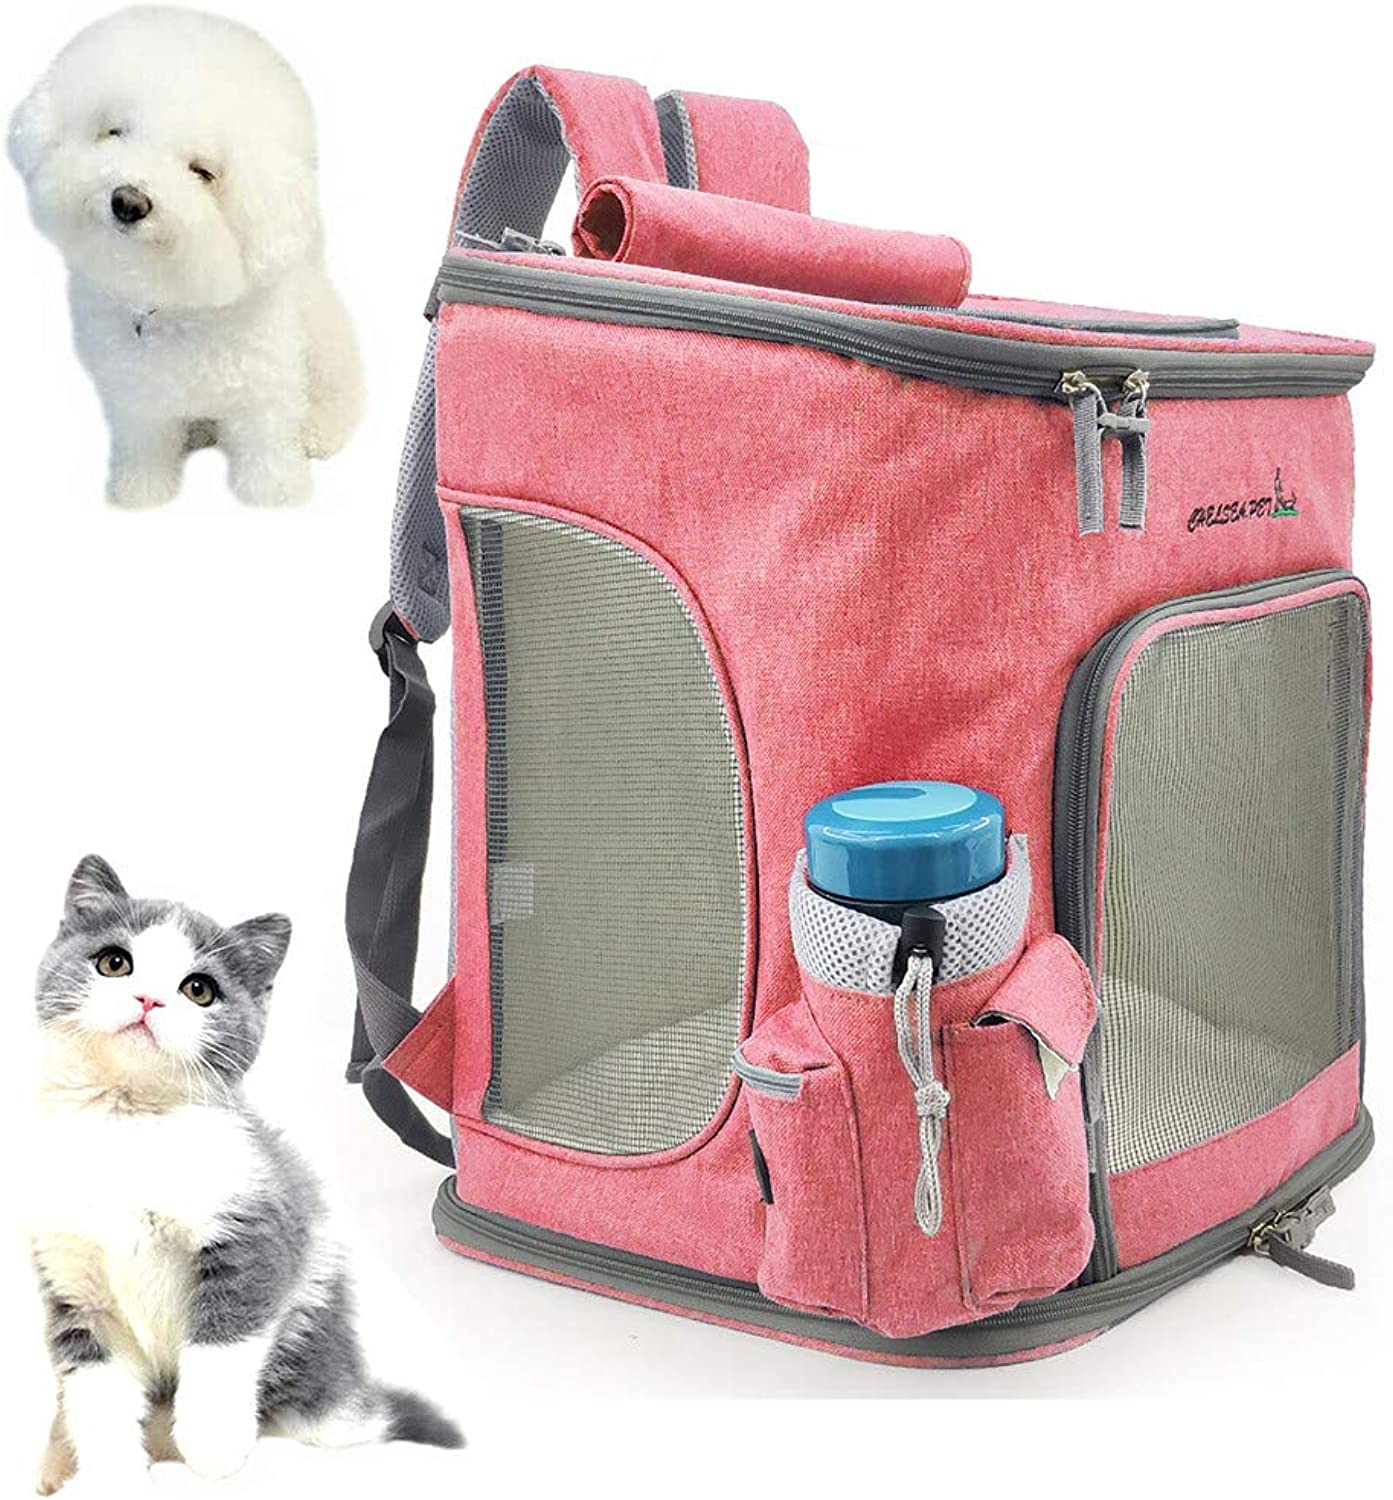 OLDWANG Pet Carrier Backpack with Shoulder Strap Dog Carrier Backpack Carrier Backpack for Small Cats and Dogs Puppies Breathable Bag Fully Ventilated Veterinarian Approved 7.5KgPink